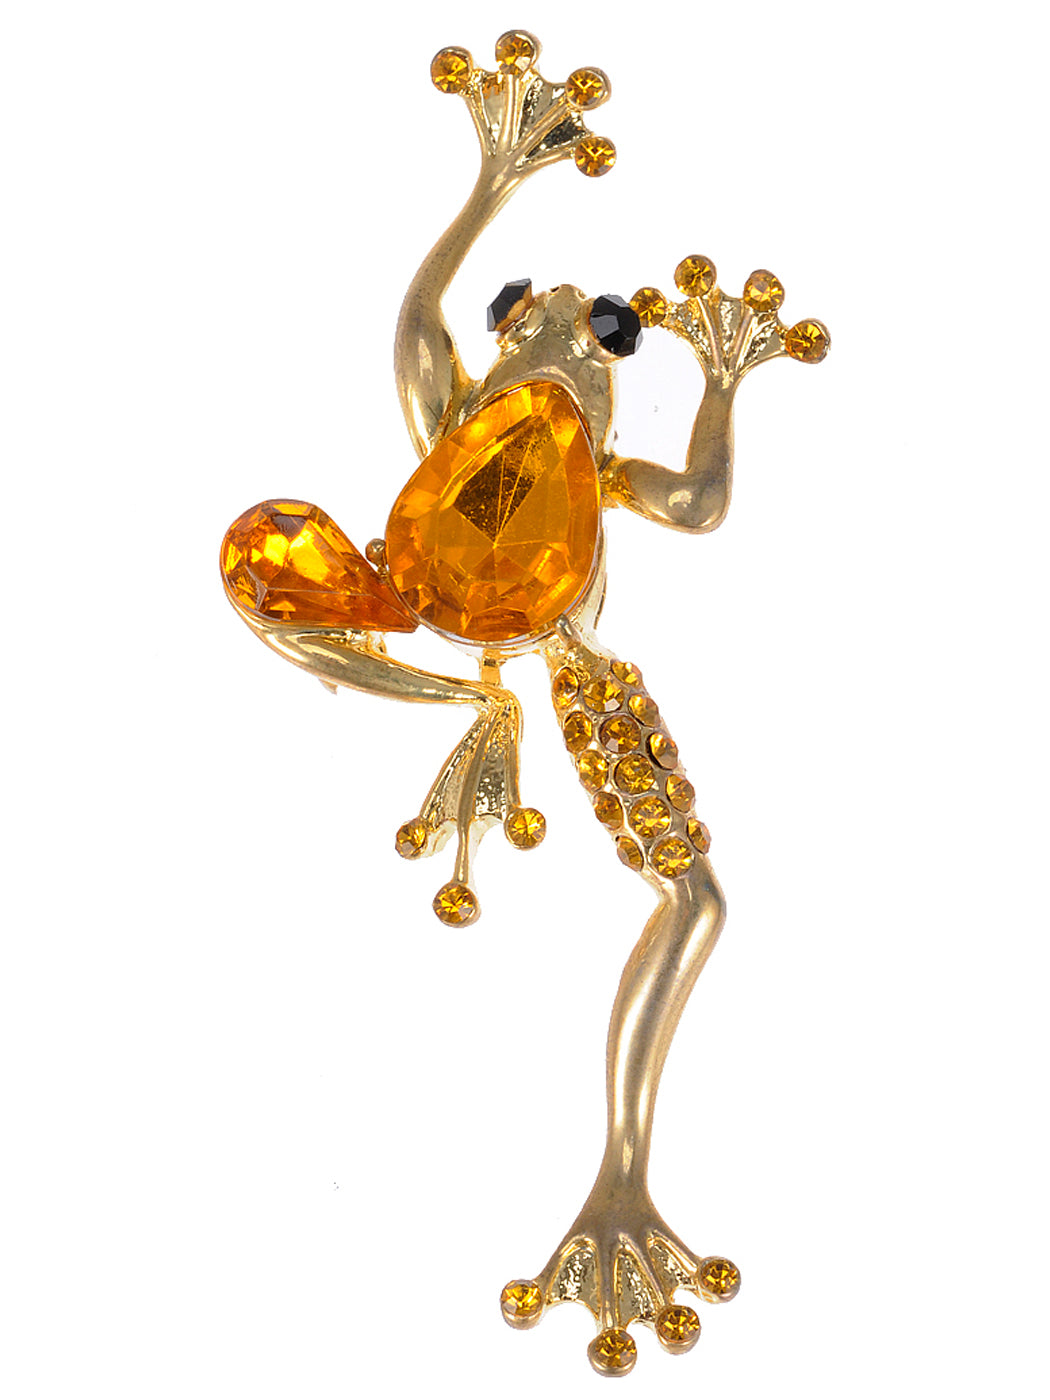 Sparkling Topaz Beaded Leaping Frog Pin Brooch